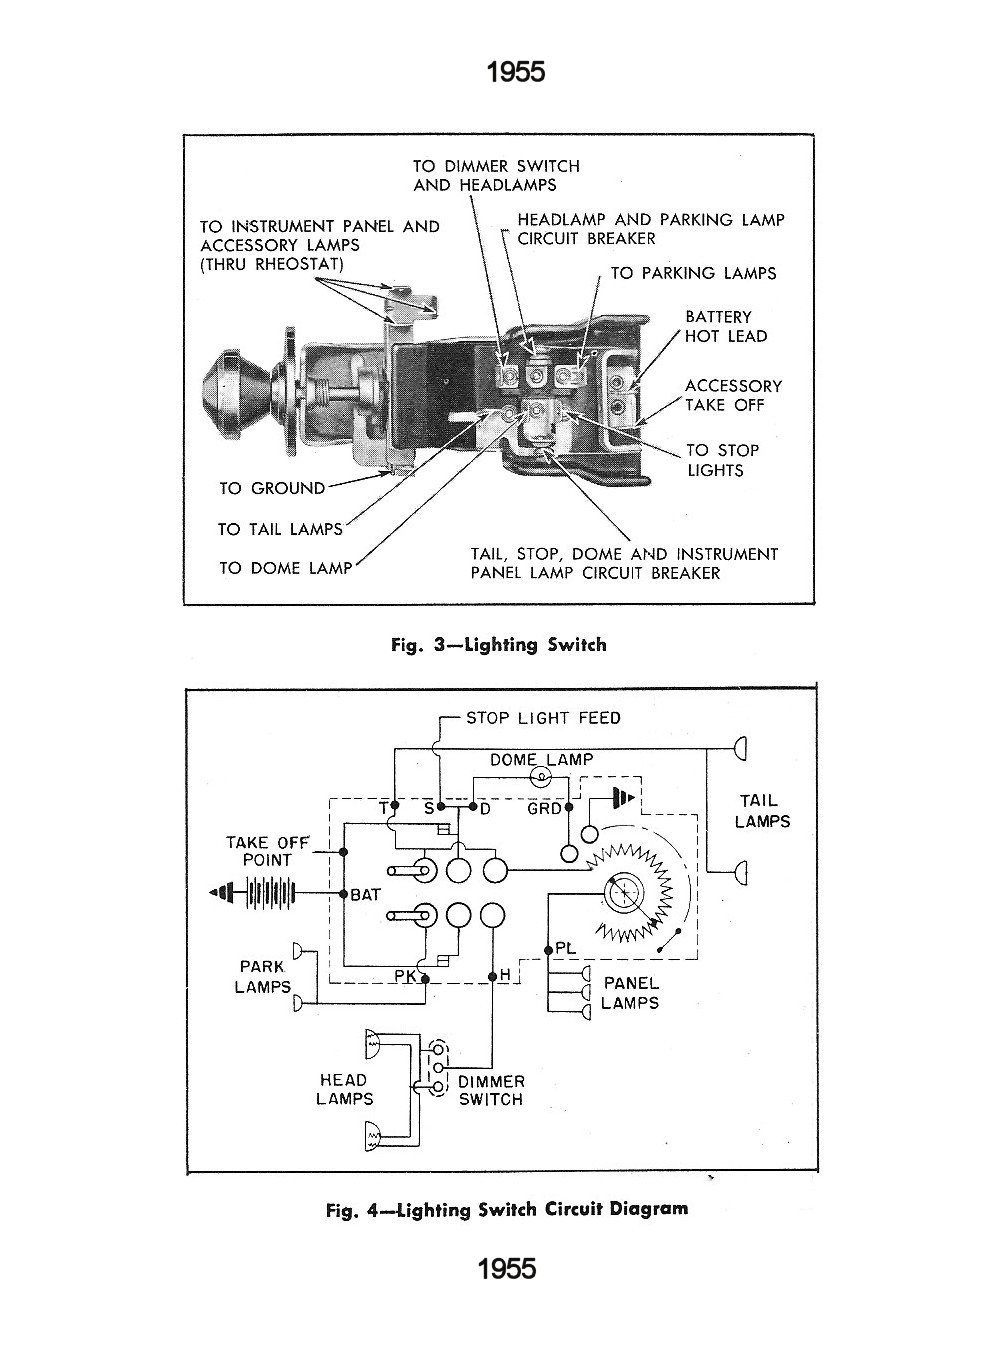 55csm1204a chevy wiring diagrams 1968 chevy wiring diagram at crackthecode.co